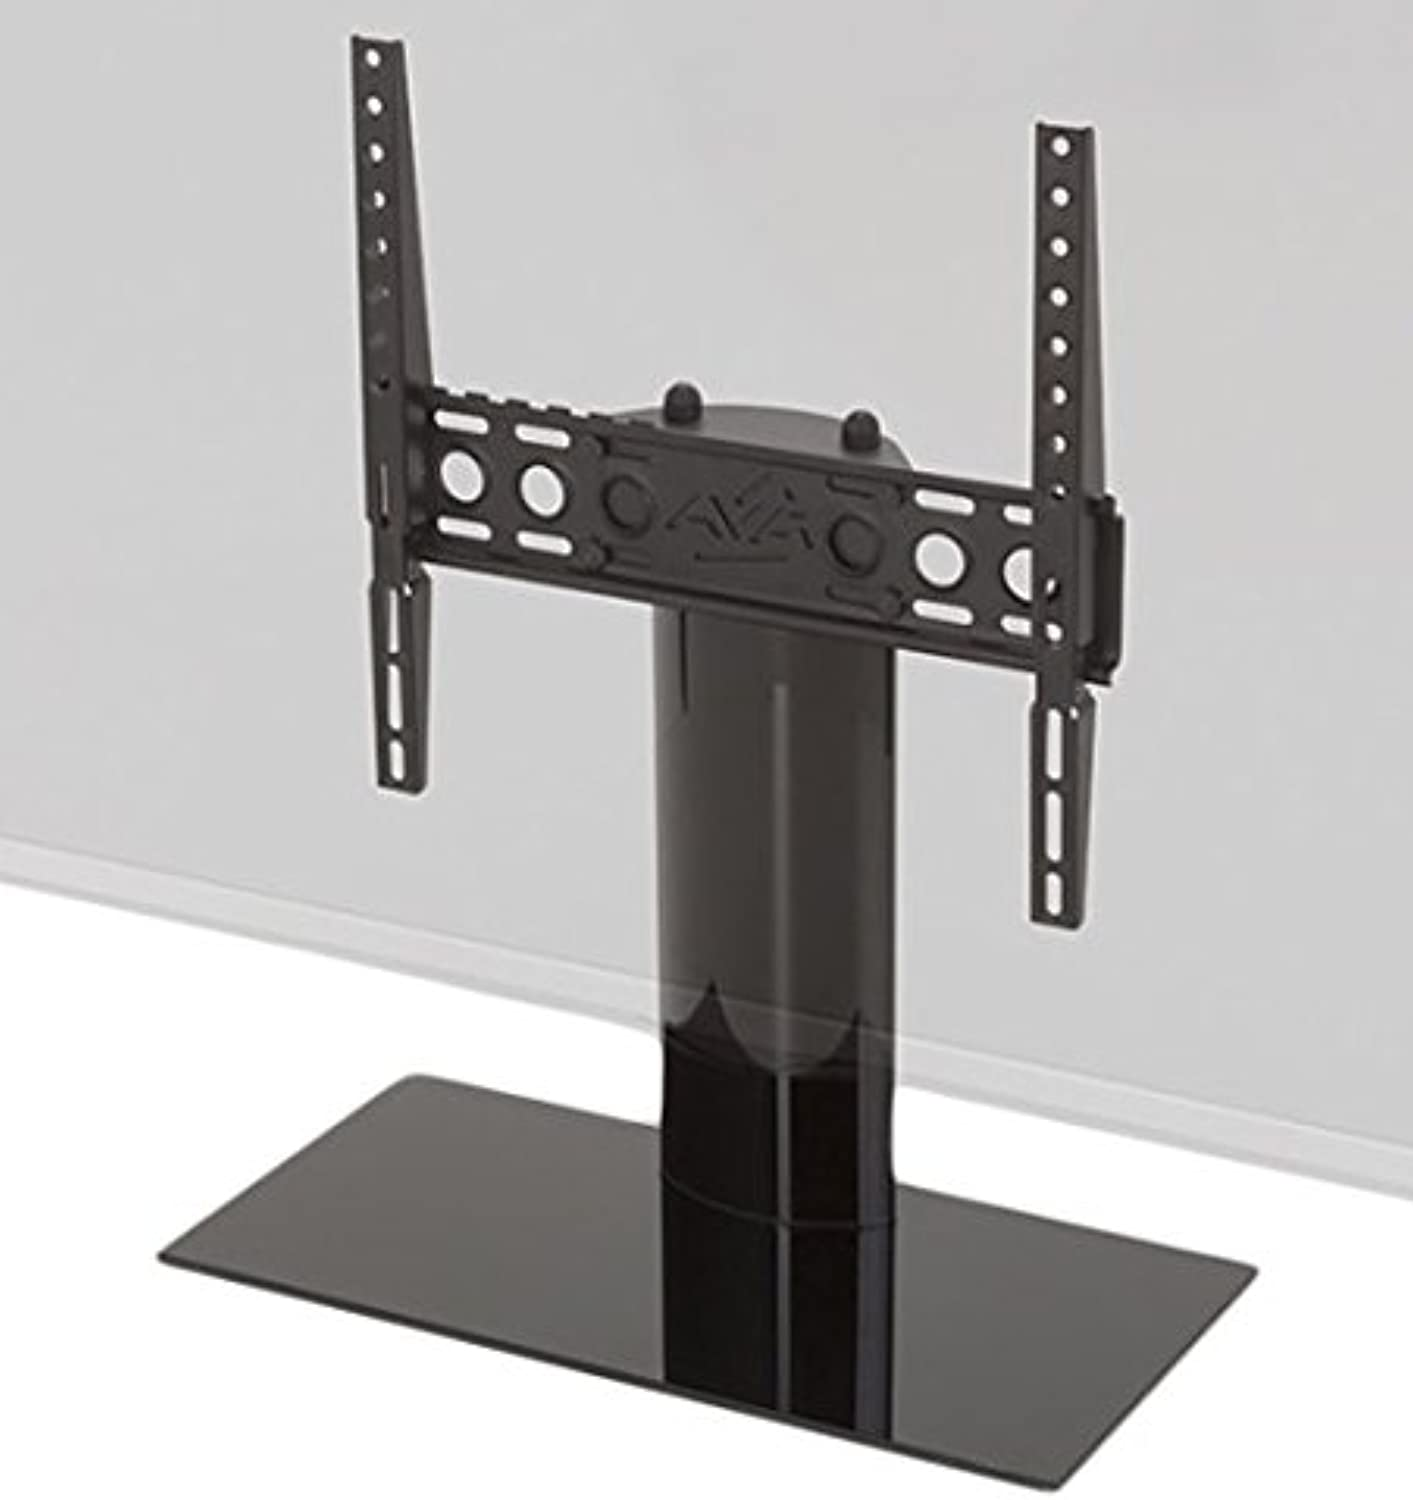 AVF B400BB-A Universal Table Top TV Stand TV Base - Fixed Position - Fits Most 37 to 55-Inch TVs - Black